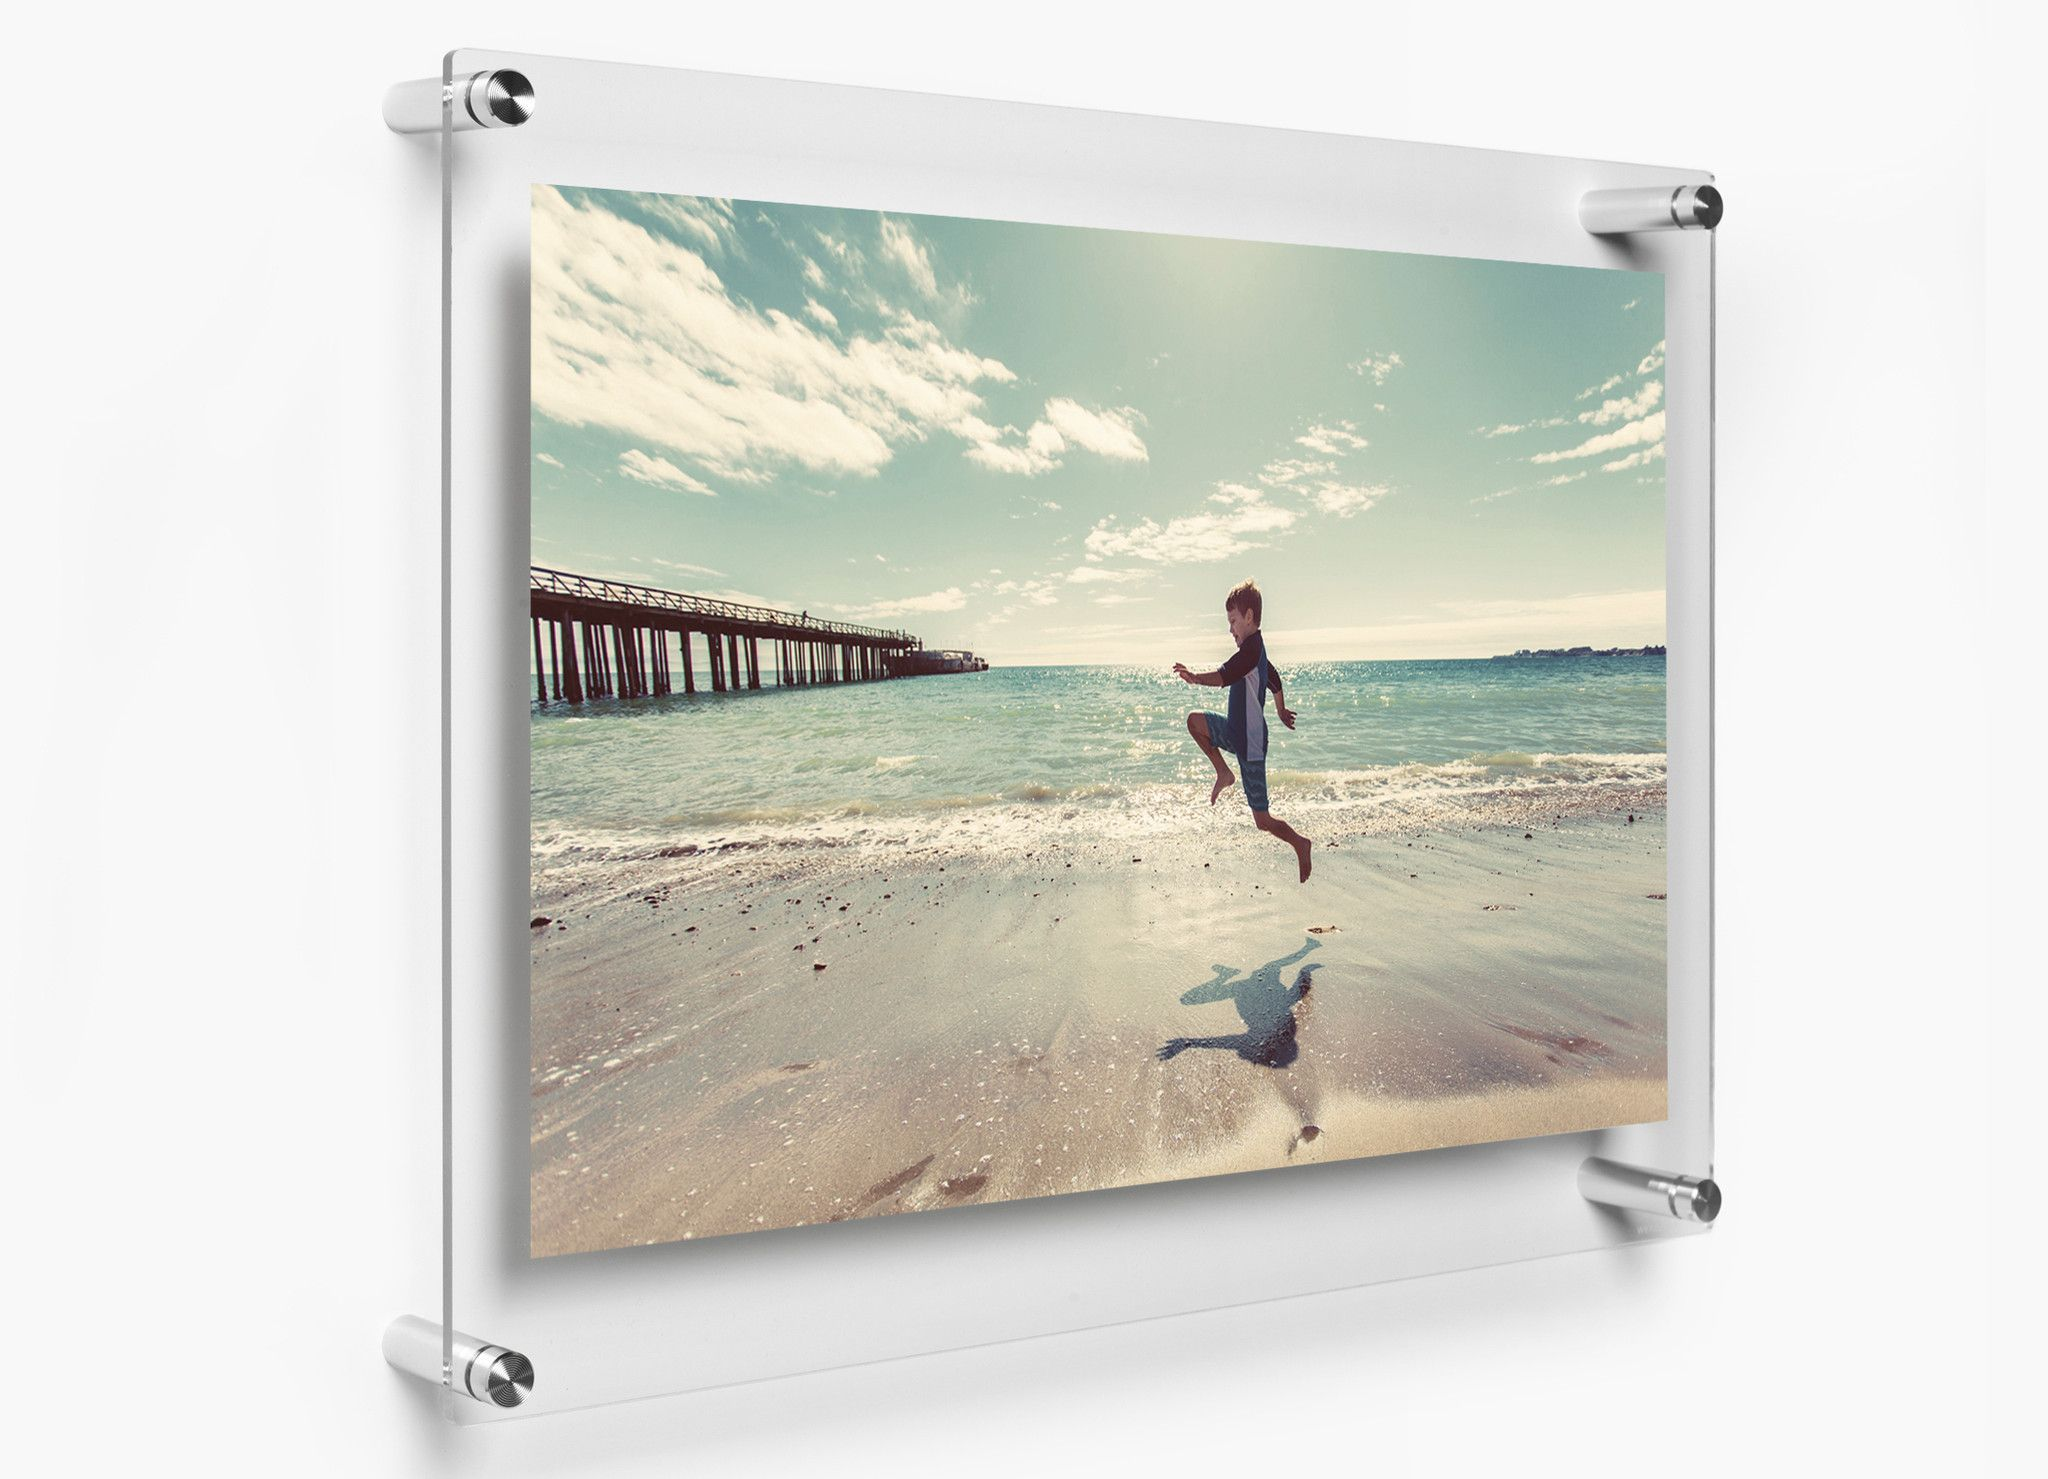 Double Panel 19 X 23 Wall Frame Dr Frames On Wall Clear Picture Frames Floating Picture Frames